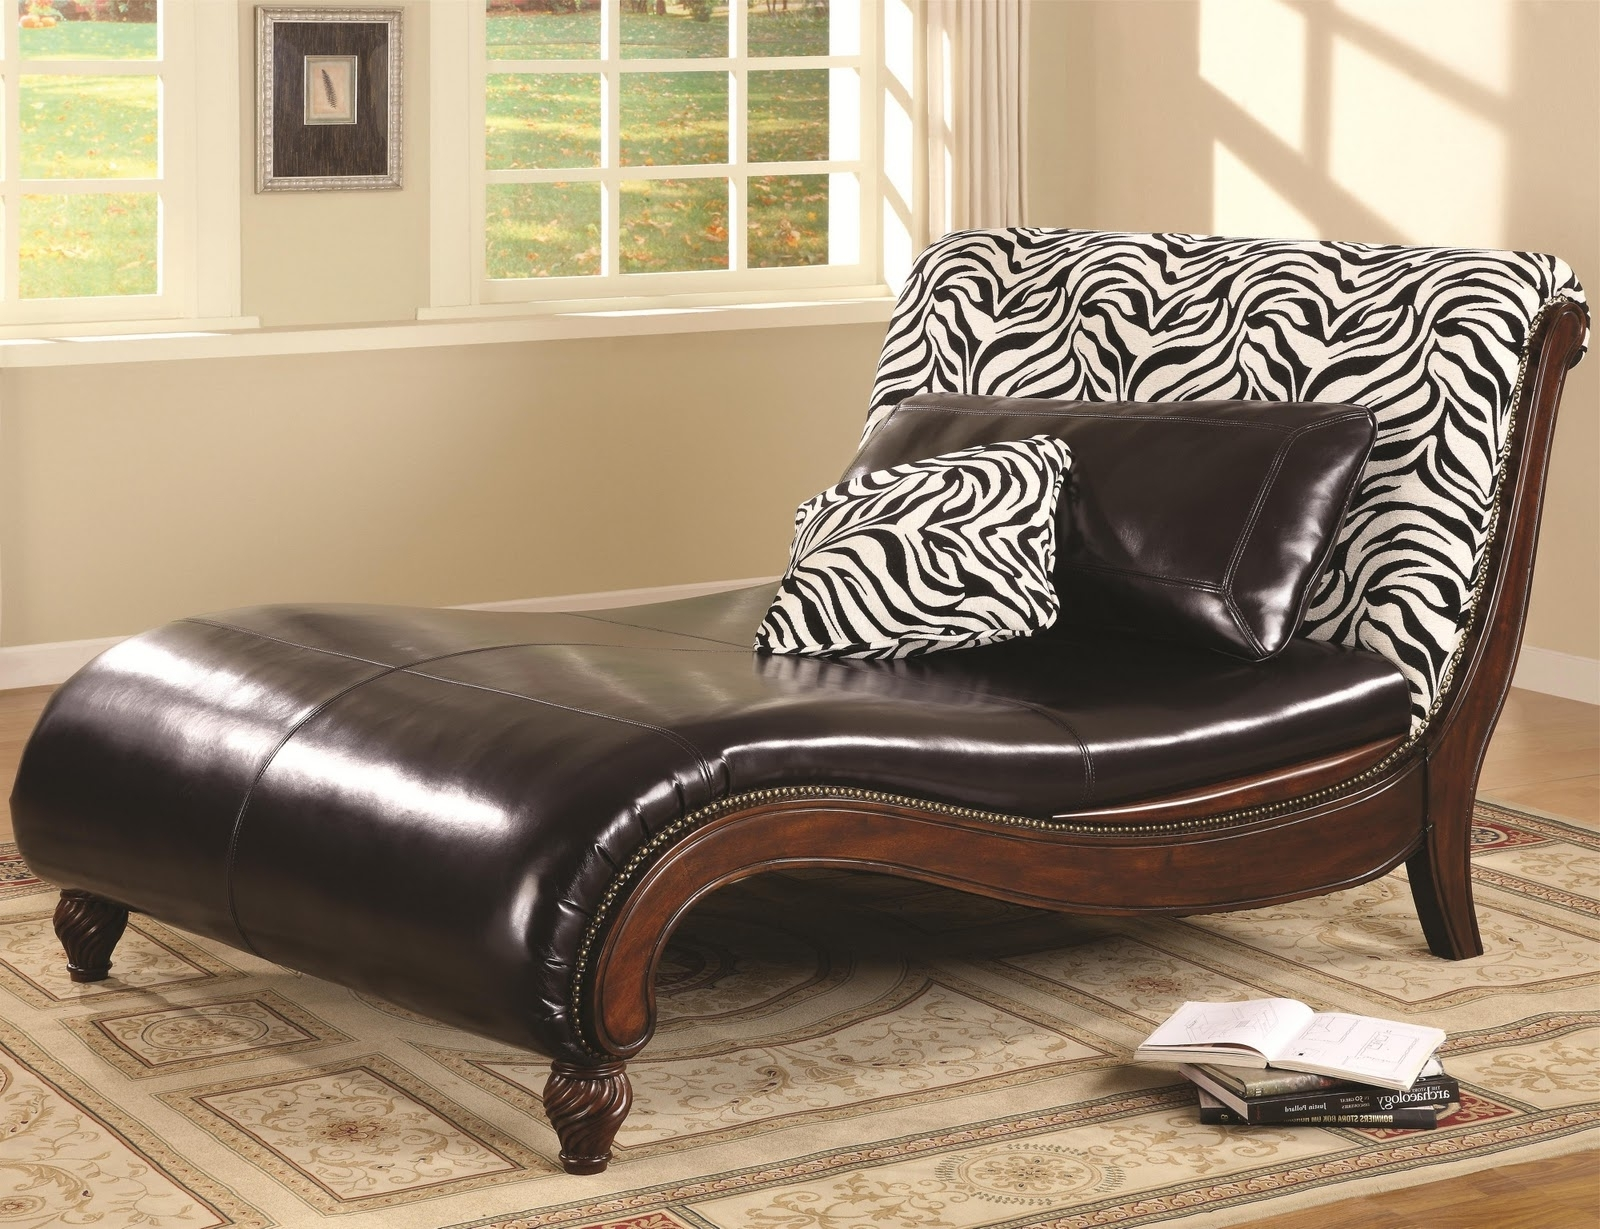 Living Room Beautiful Chaise Lounge Chairs For With Gallery Animal Throughout Most Current Zebra Print Chaise Lounge Chairs (View 2 of 15)